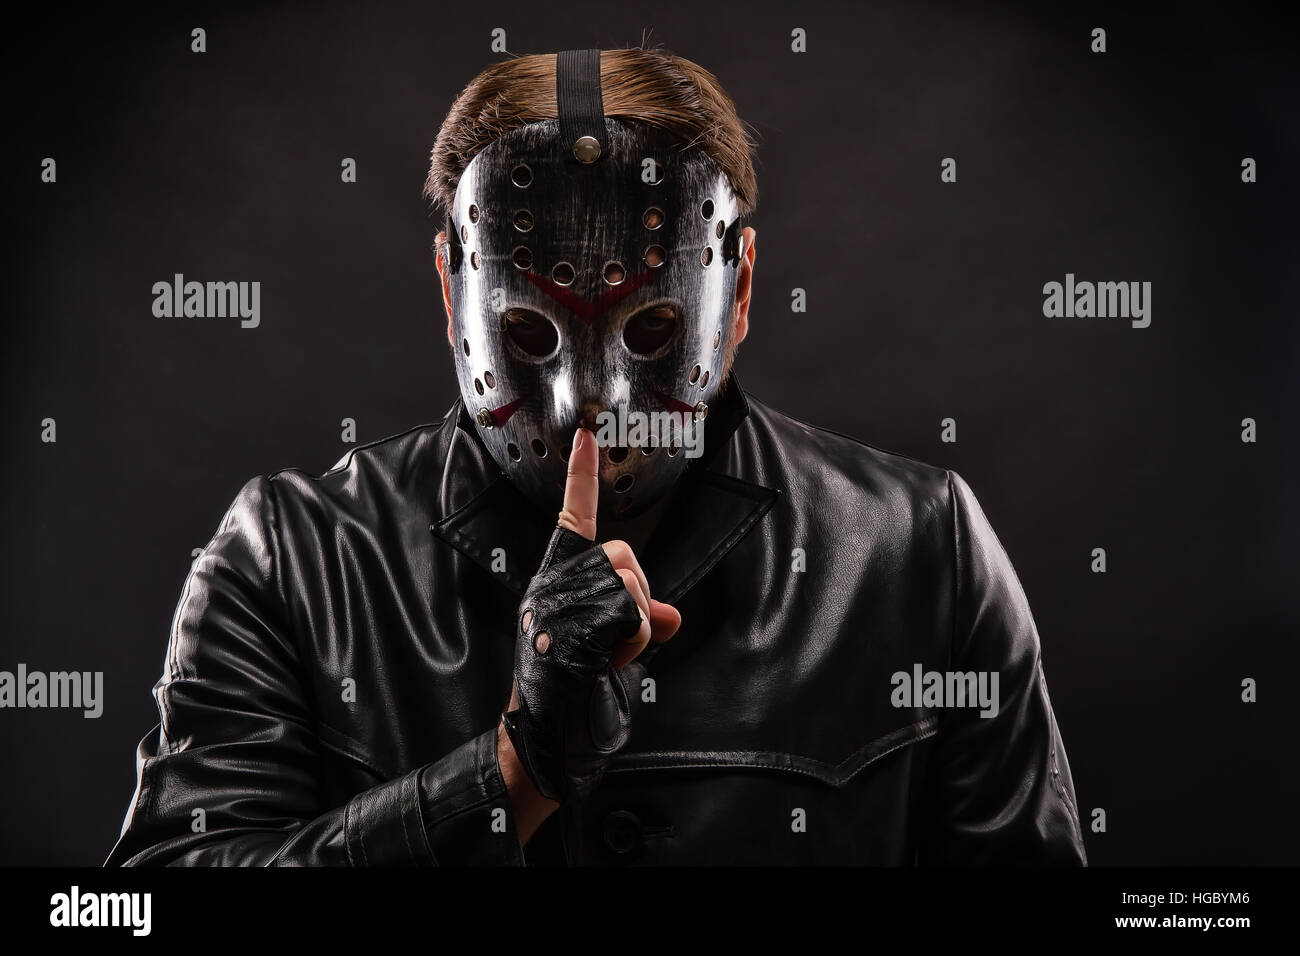 Serial maniac in hockey show do not talk sign - Stock Image